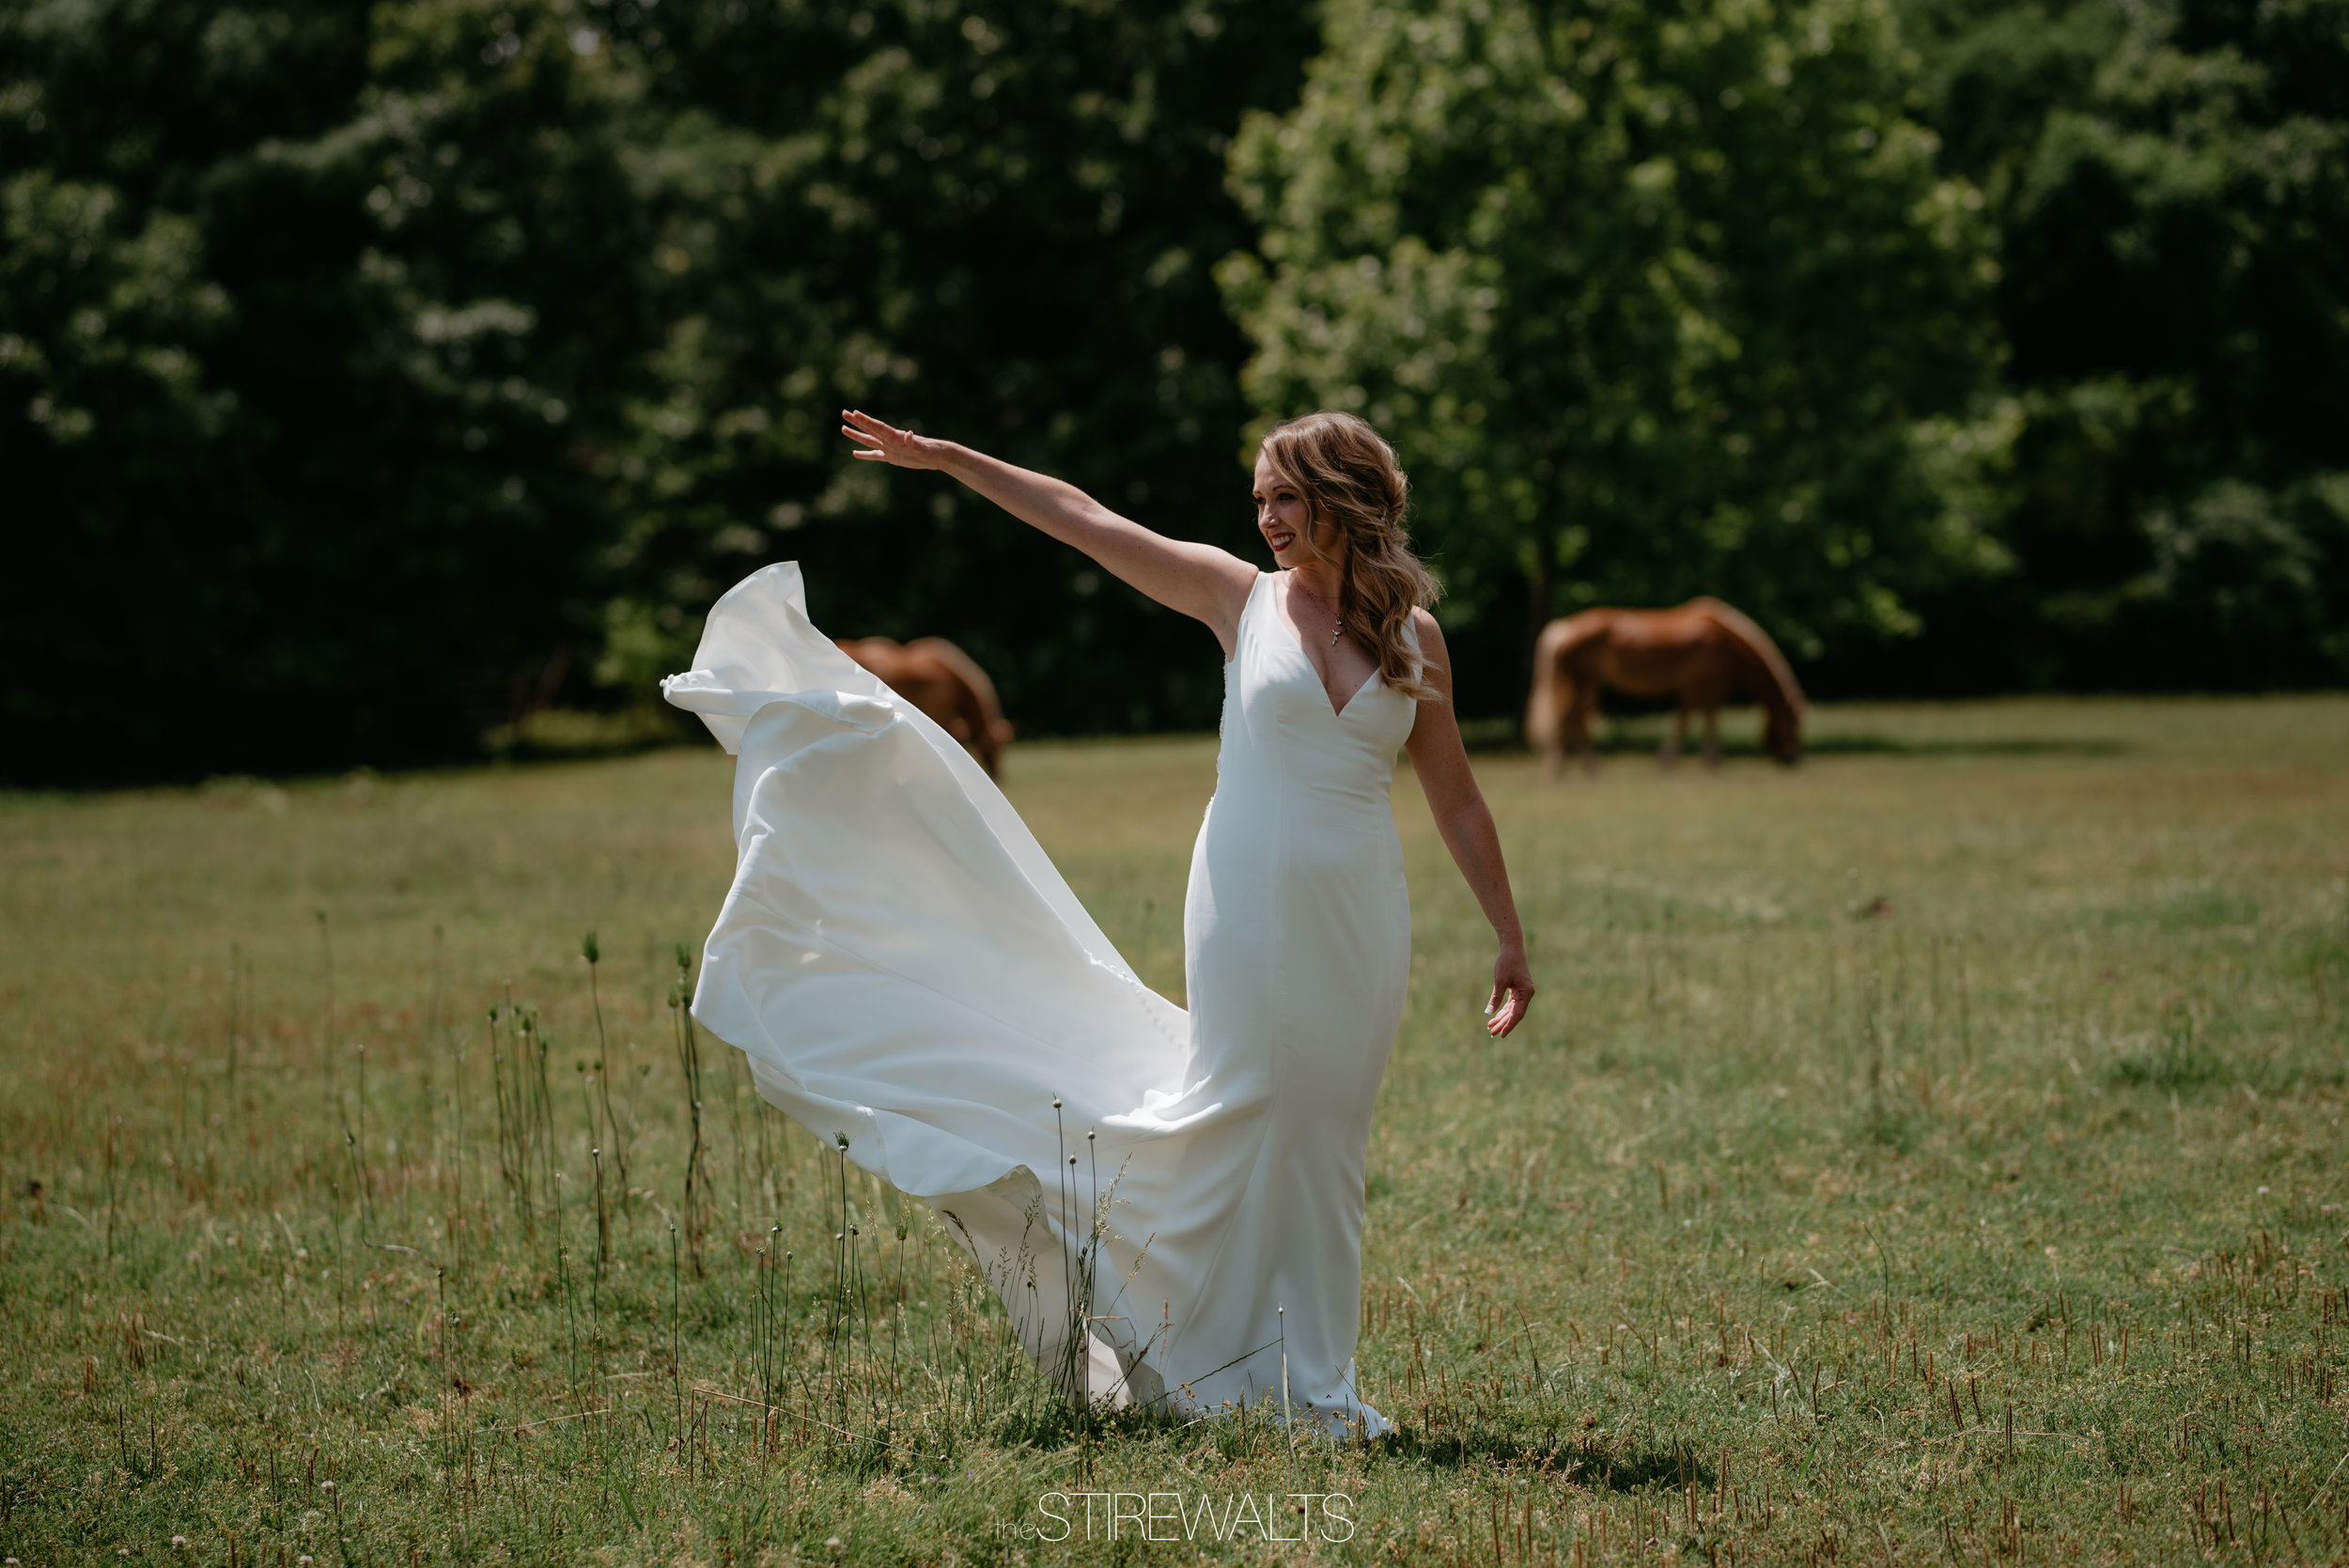 Kayla.Jay.Wedding.Blog.2018.©TheStirewalts-55.jpg